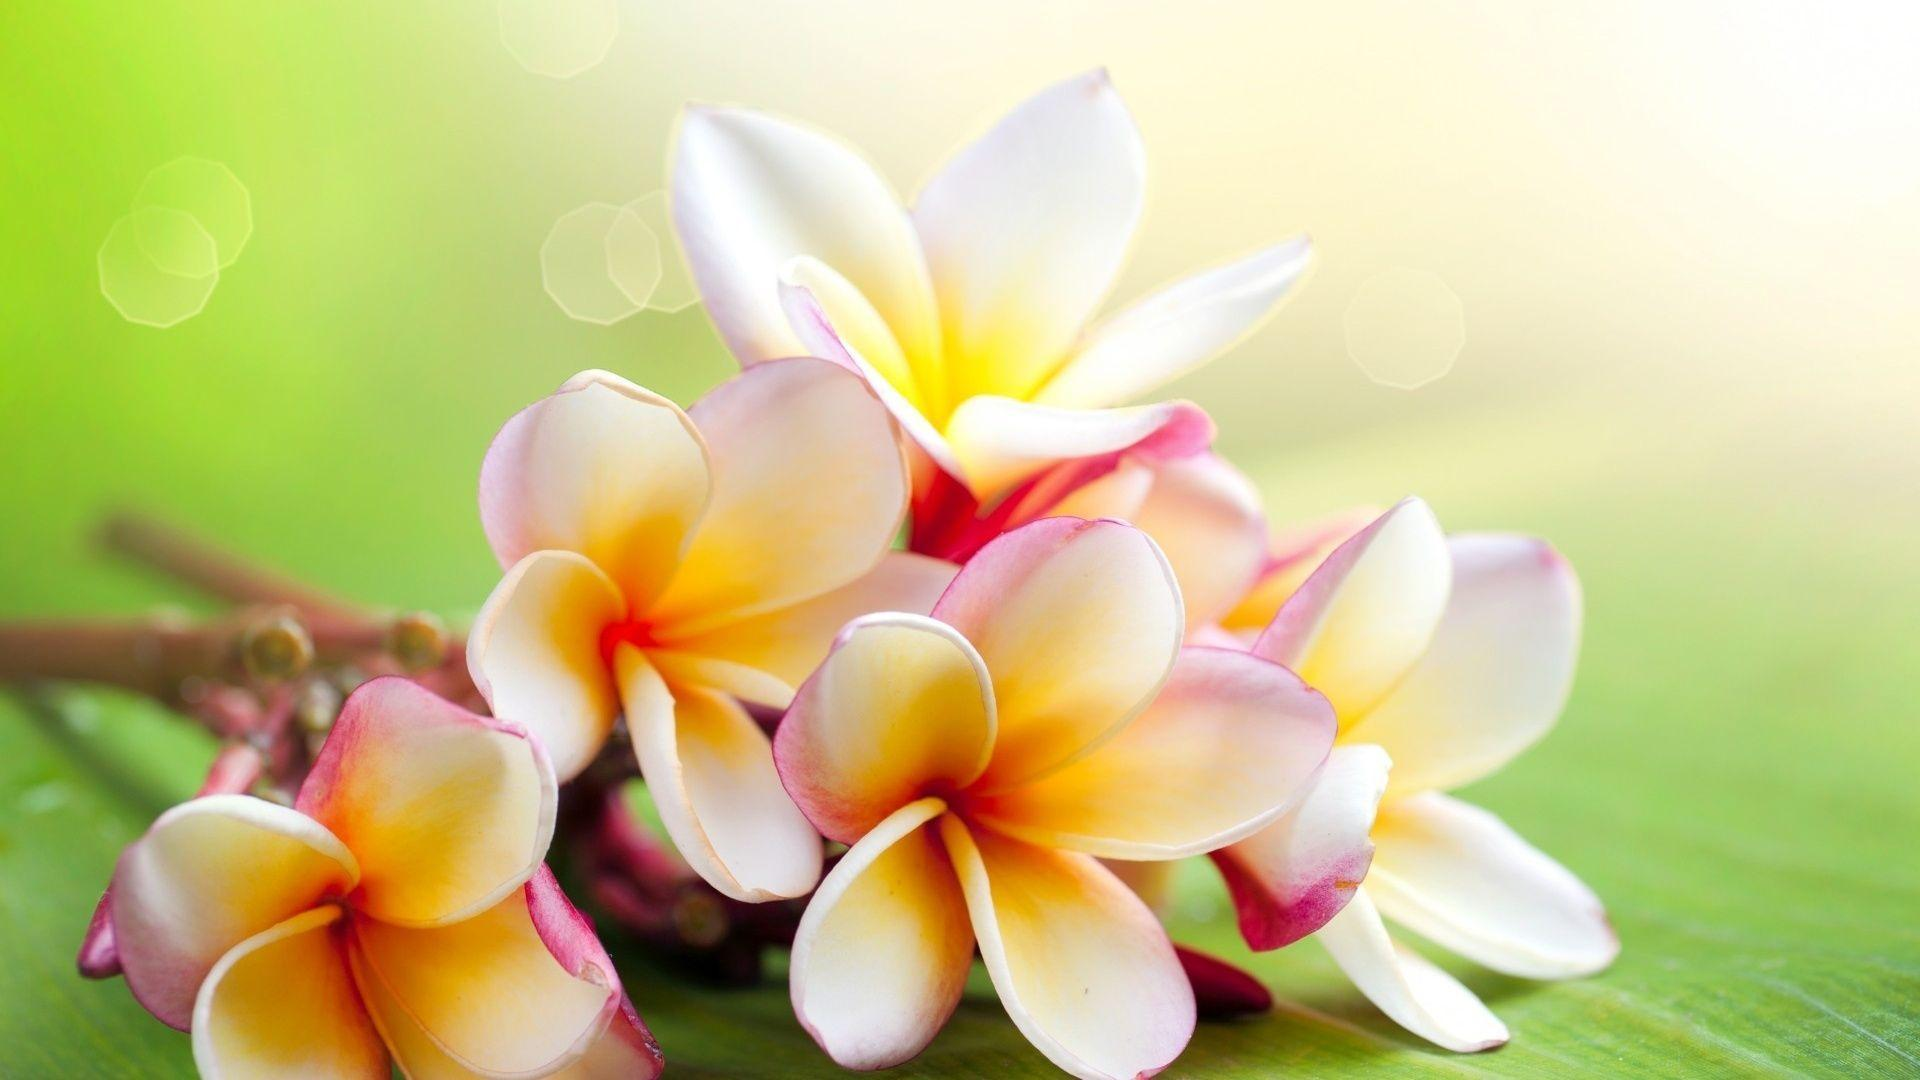 Jasmine Flower Wallpapers - Wallpaper Cave